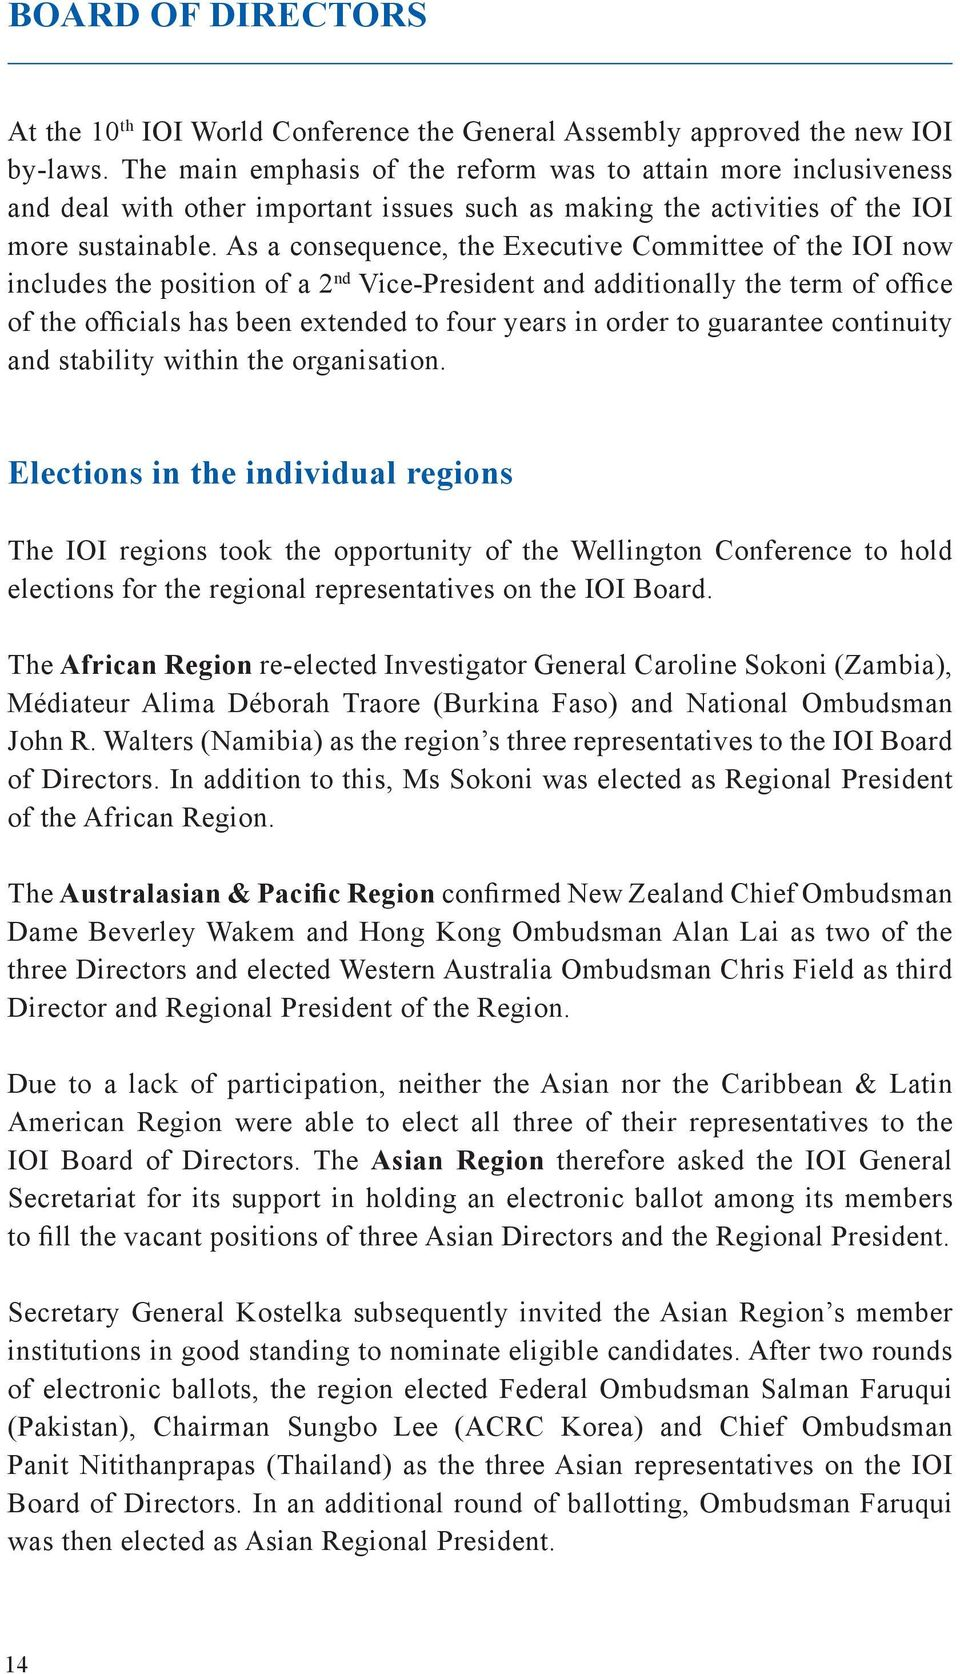 As a consequence, the Executive Committee of the IOI now includes the position of a 2 nd Vice-President and additionally the term of office of the officials has been extended to four years in order